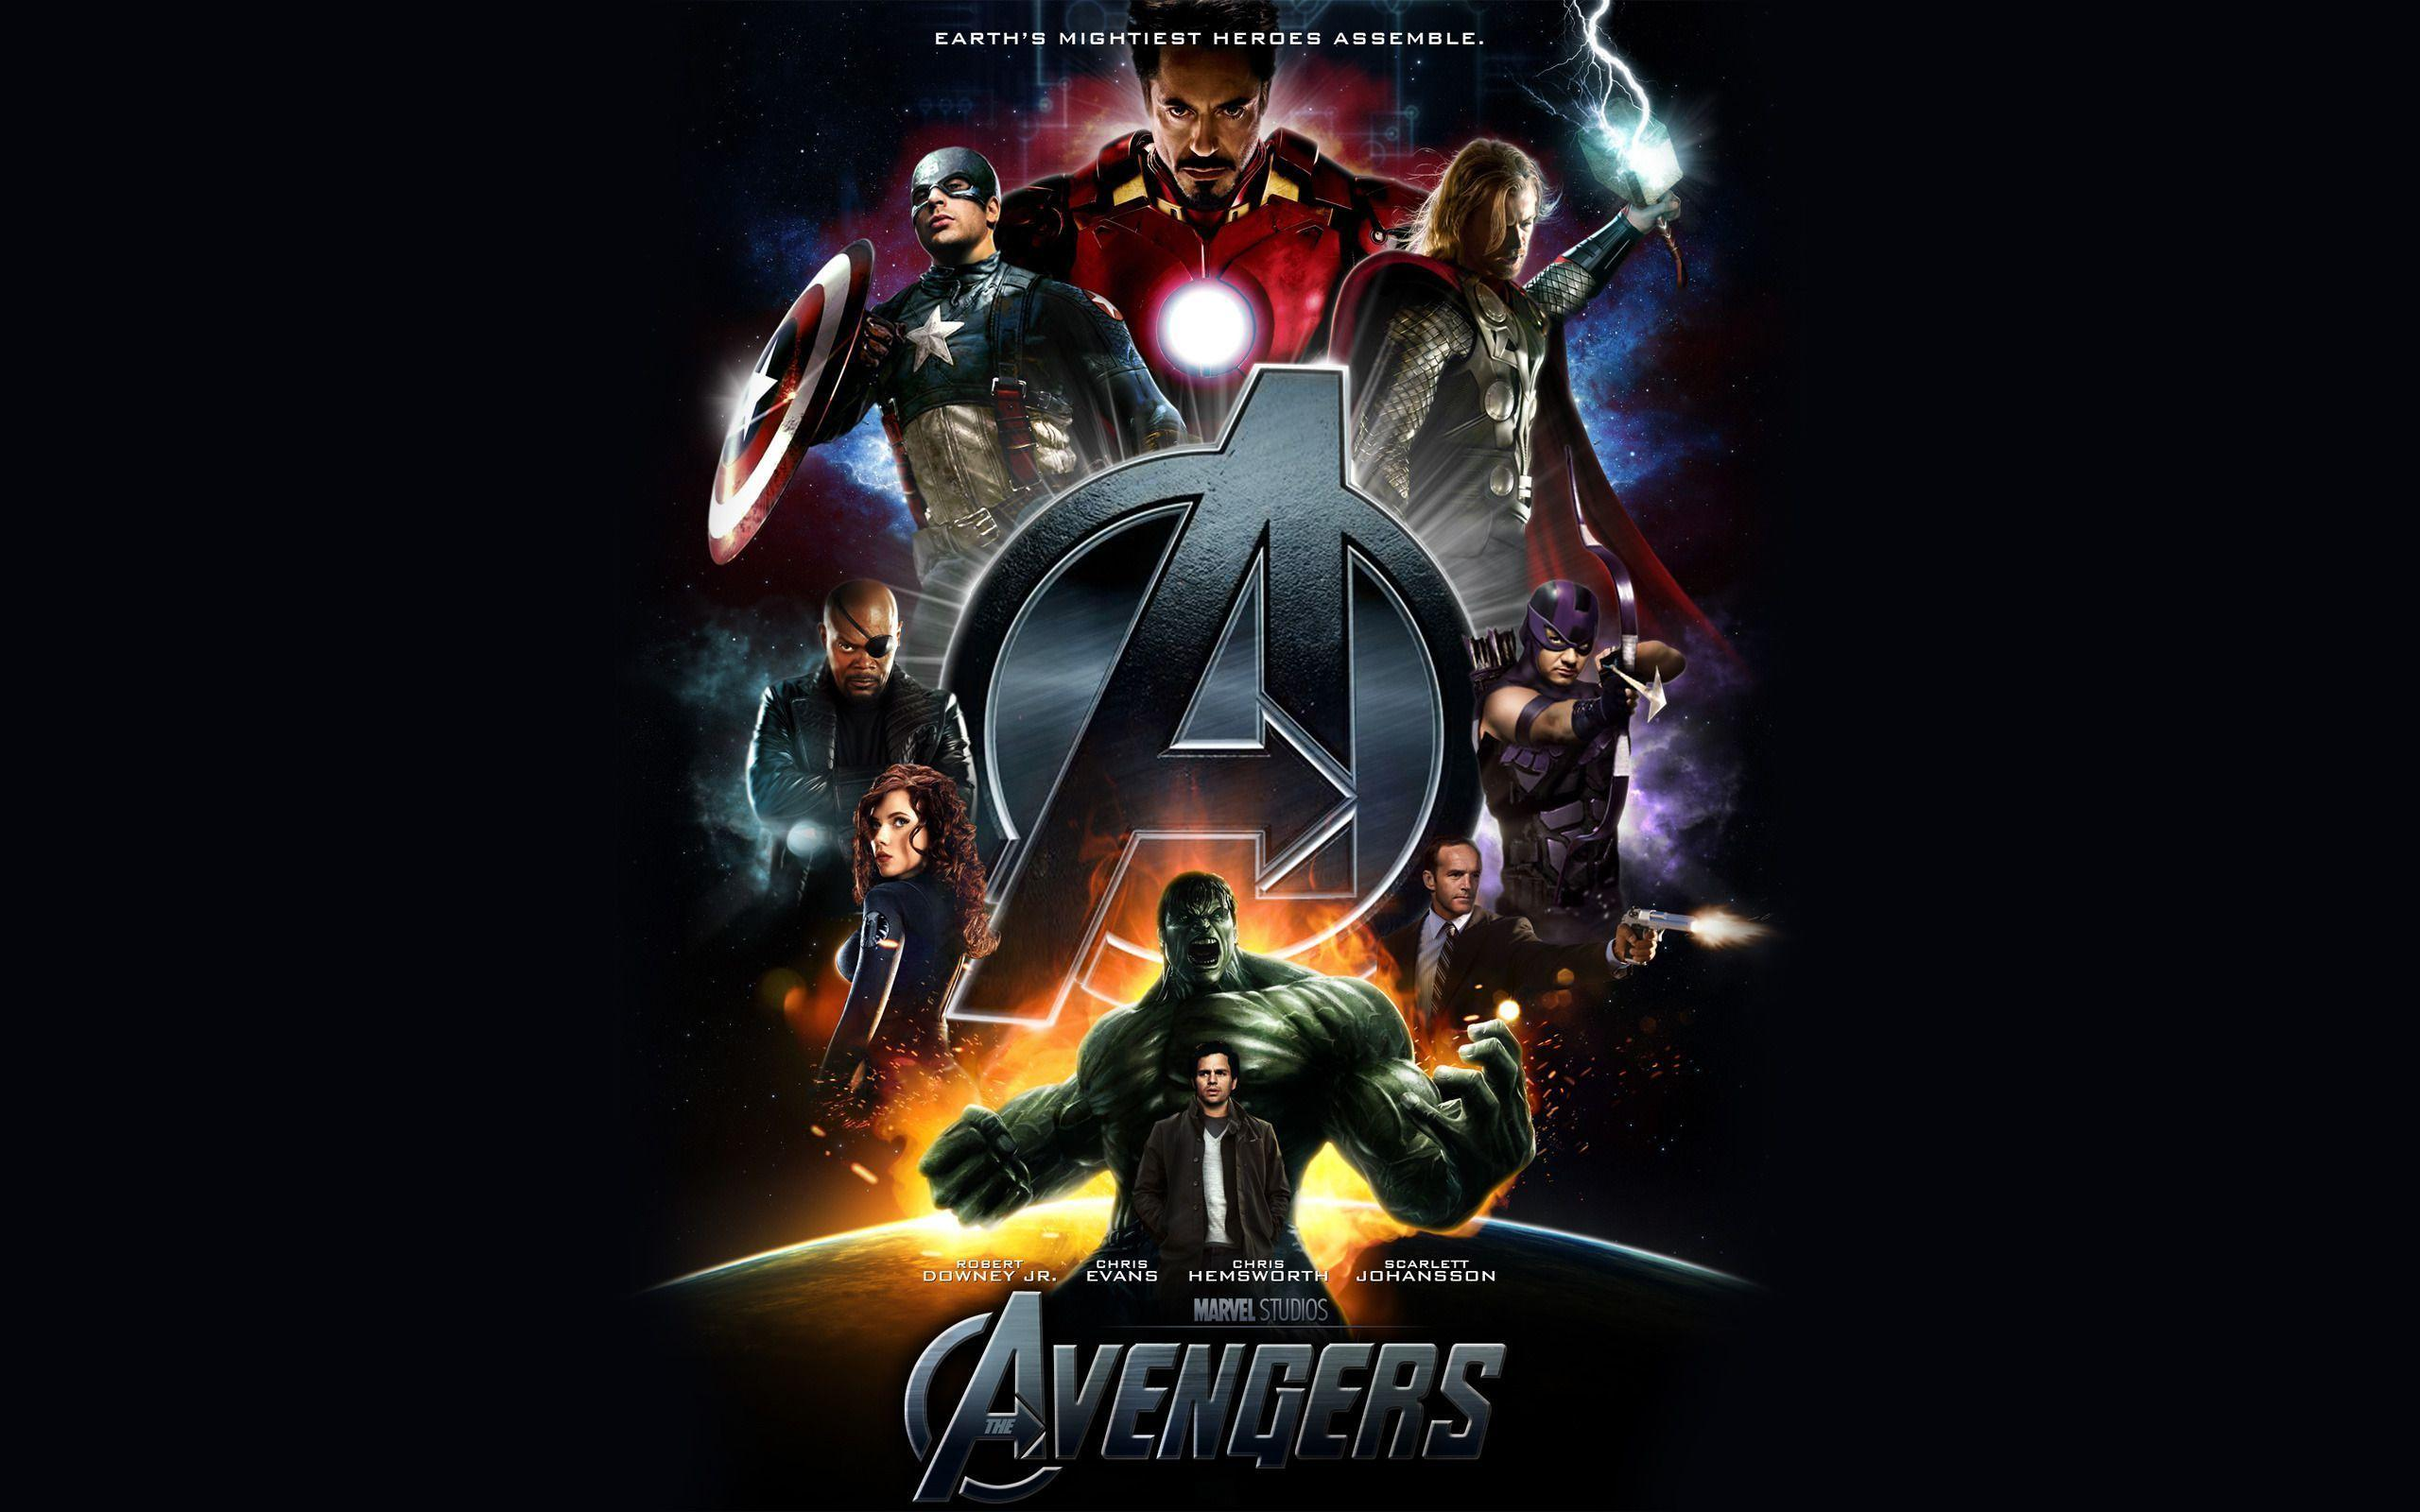 Avengers 2 Marvel Movie Poster Wallpapers Wallpapers